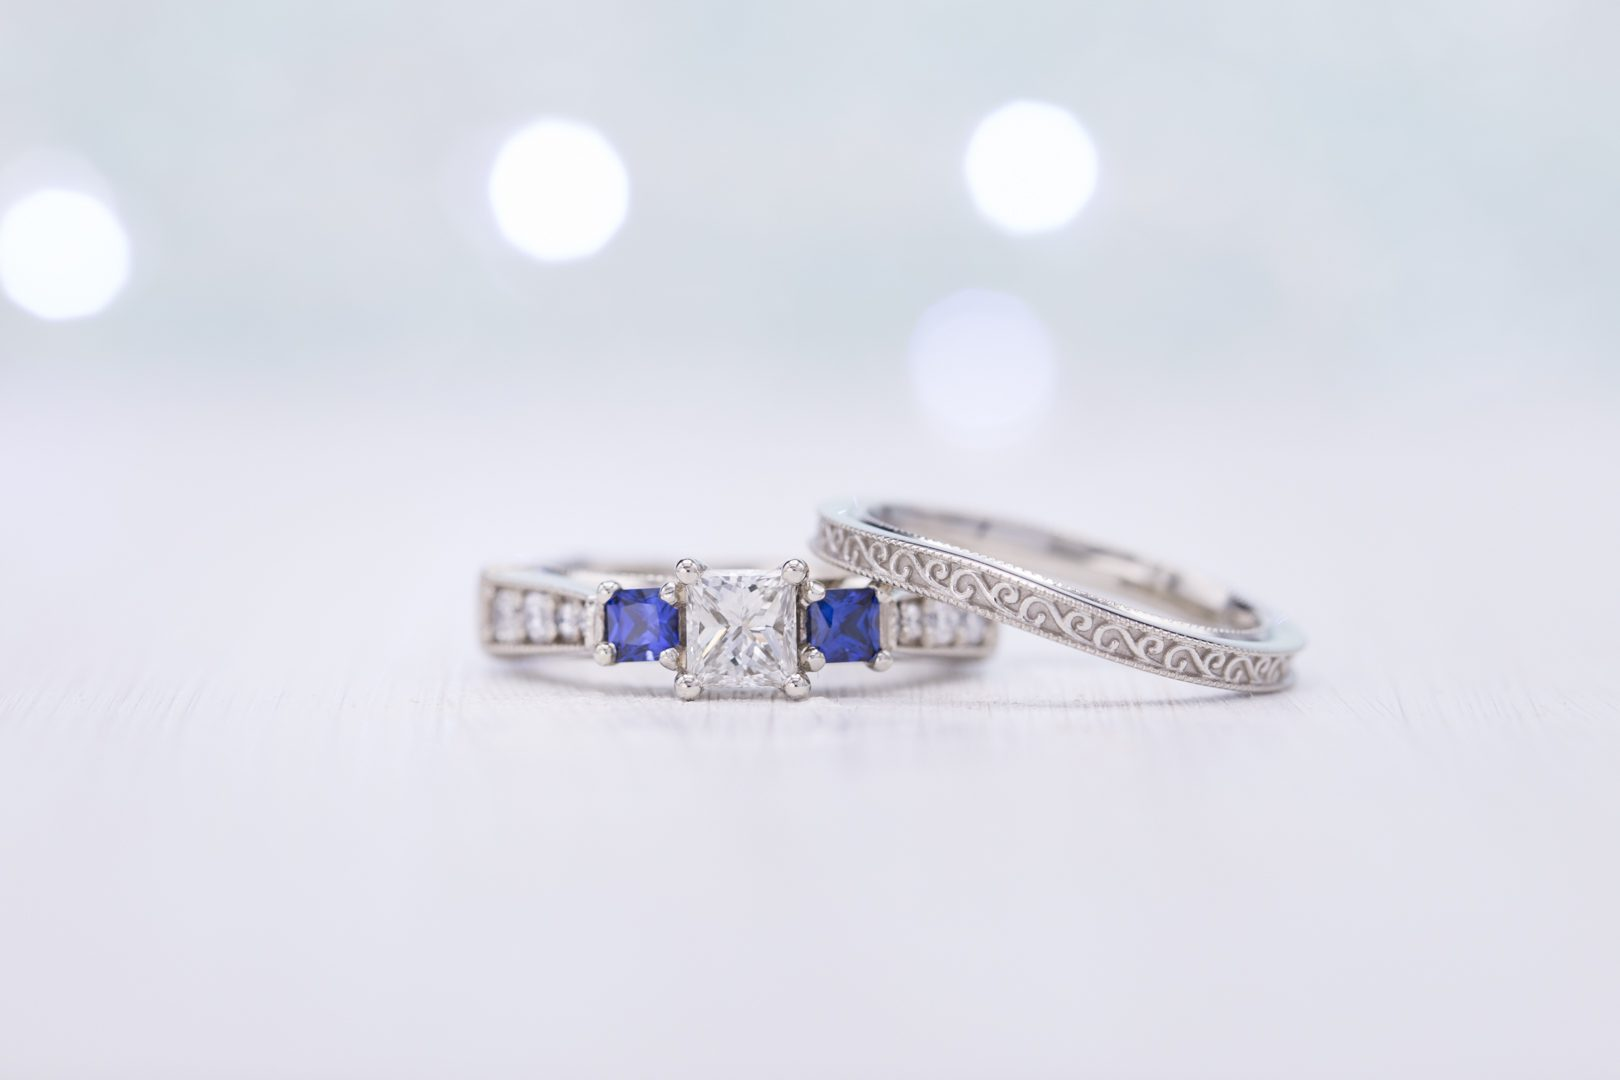 princess-cut diamond with sapphire accents - engagement ring setting